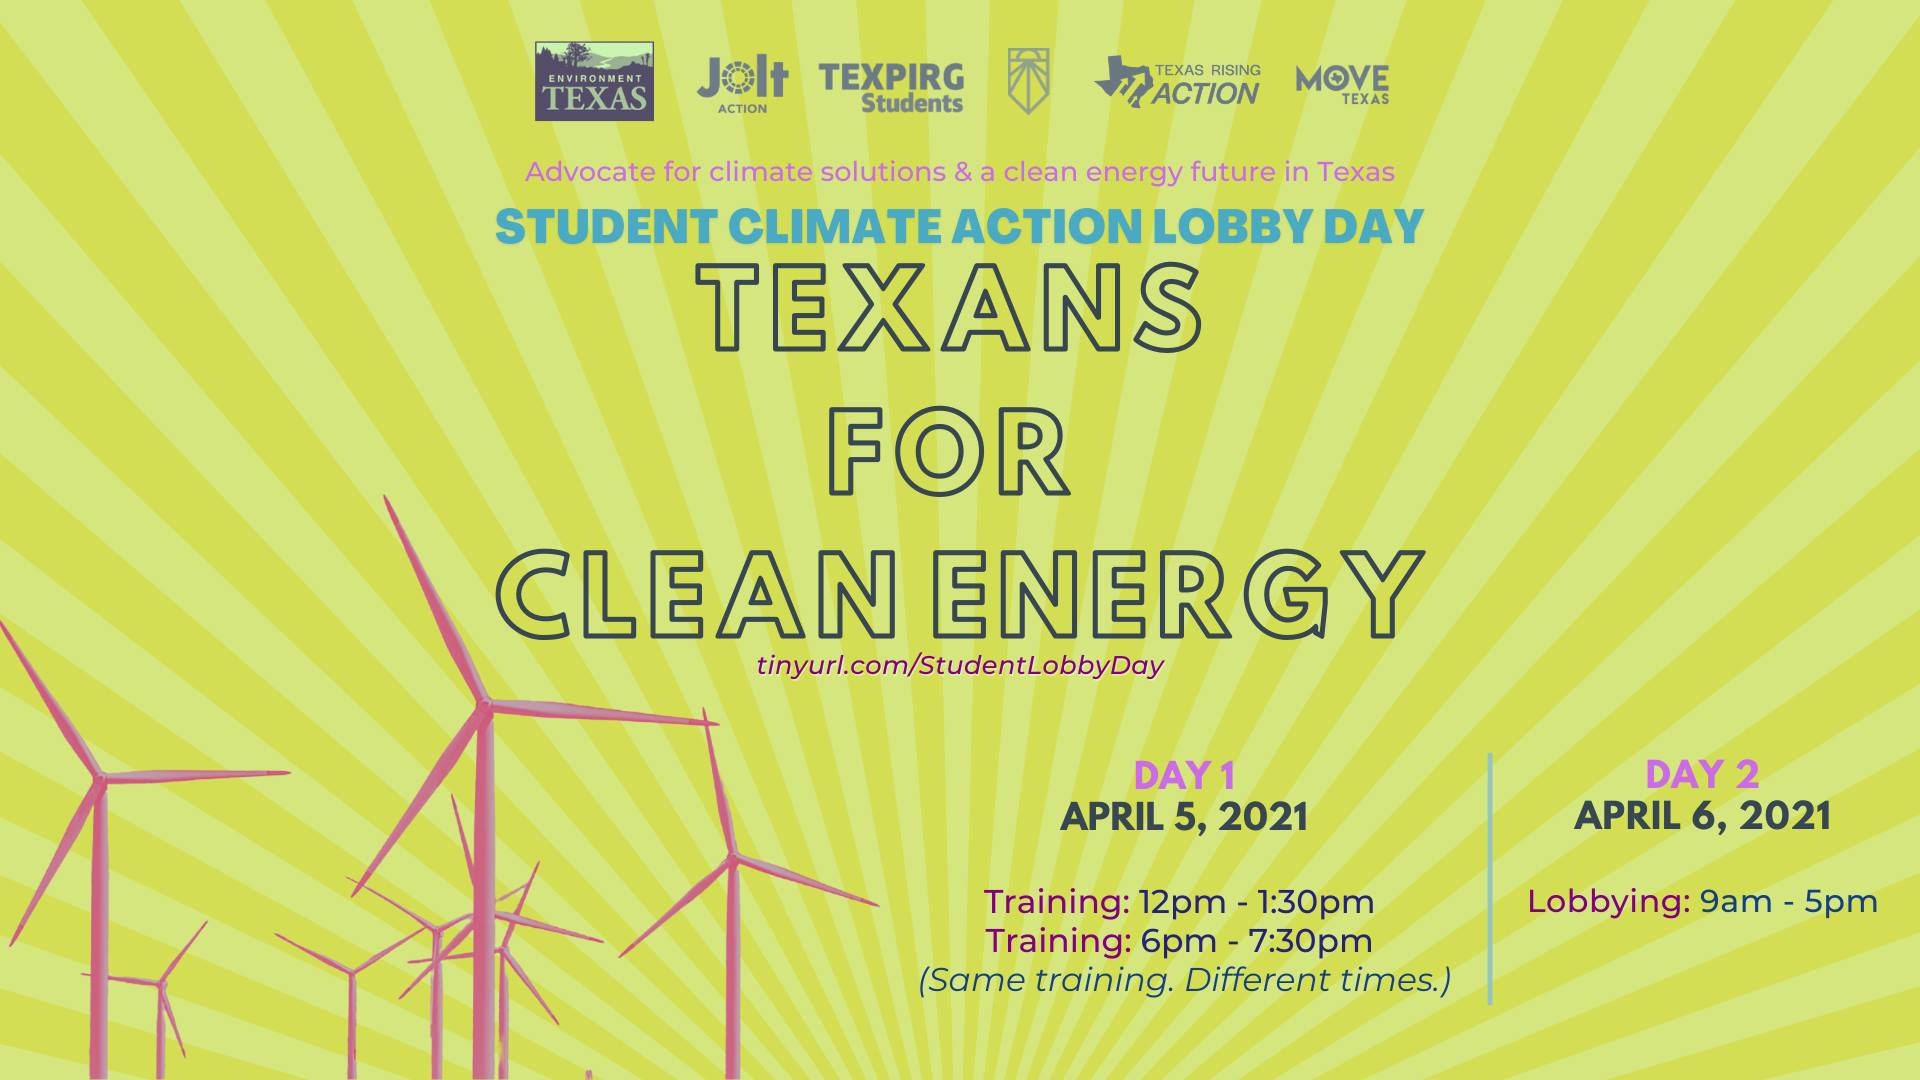 texans for clean energy